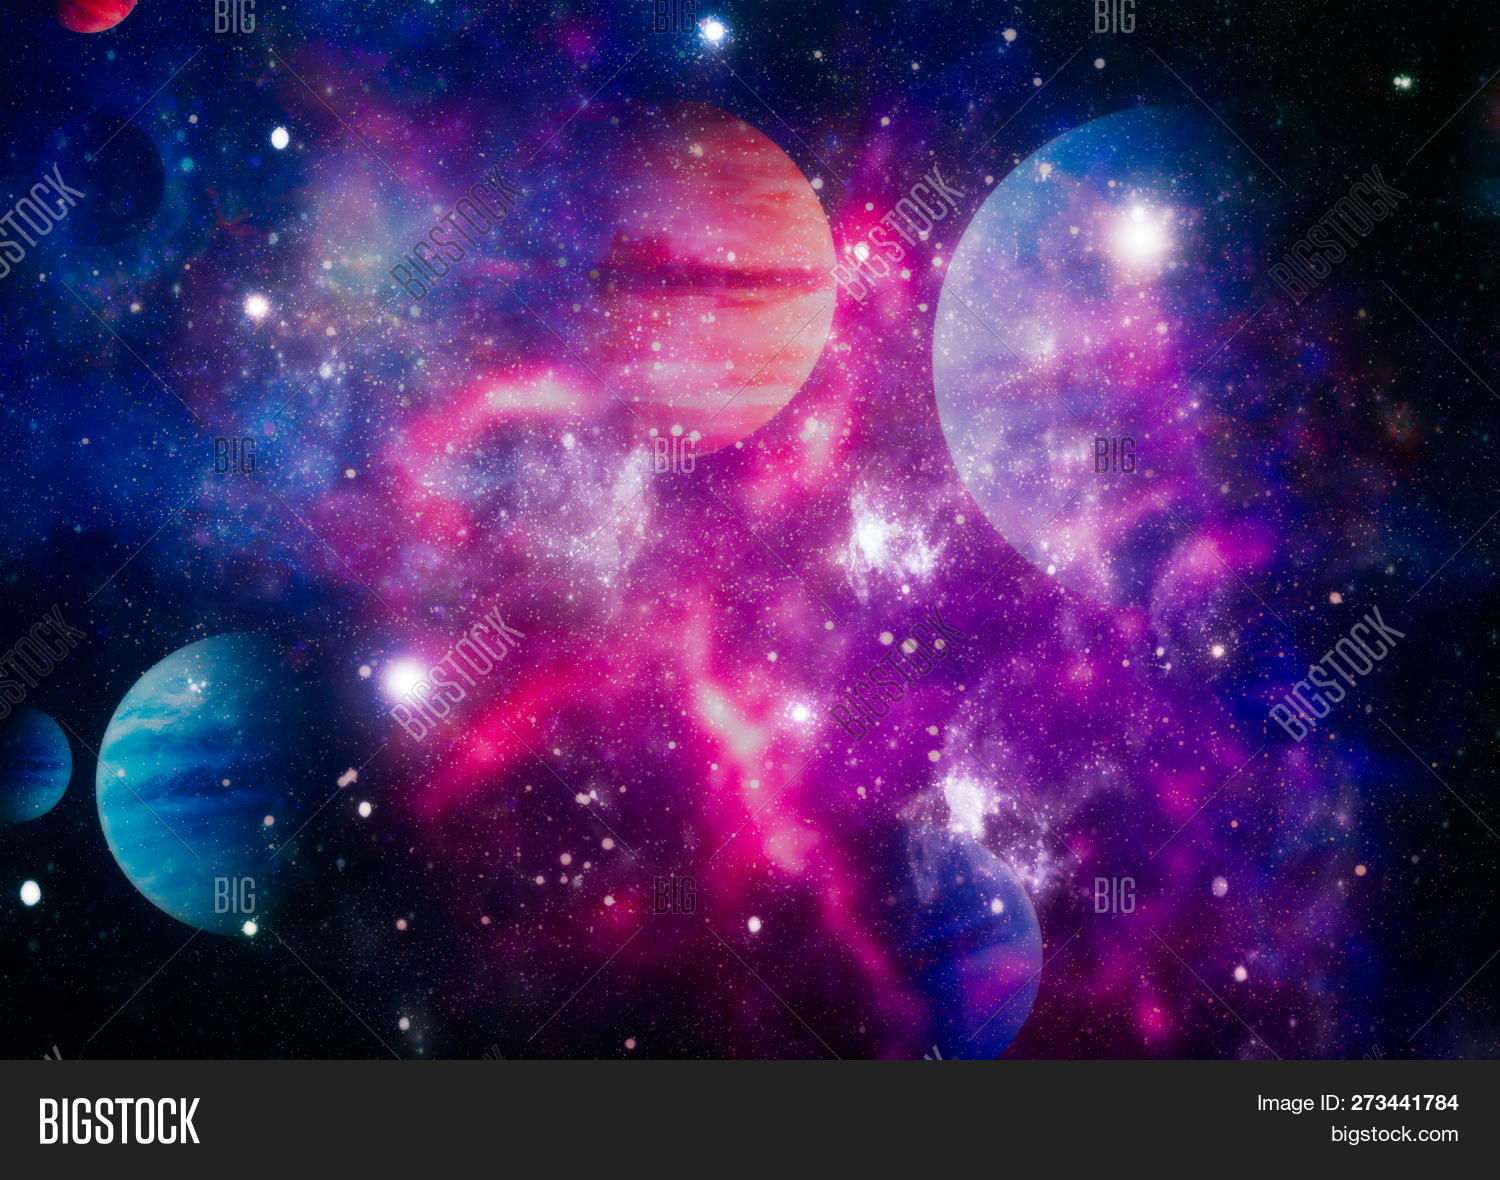 High Quality Space Image Photo Free Trial Bigstock